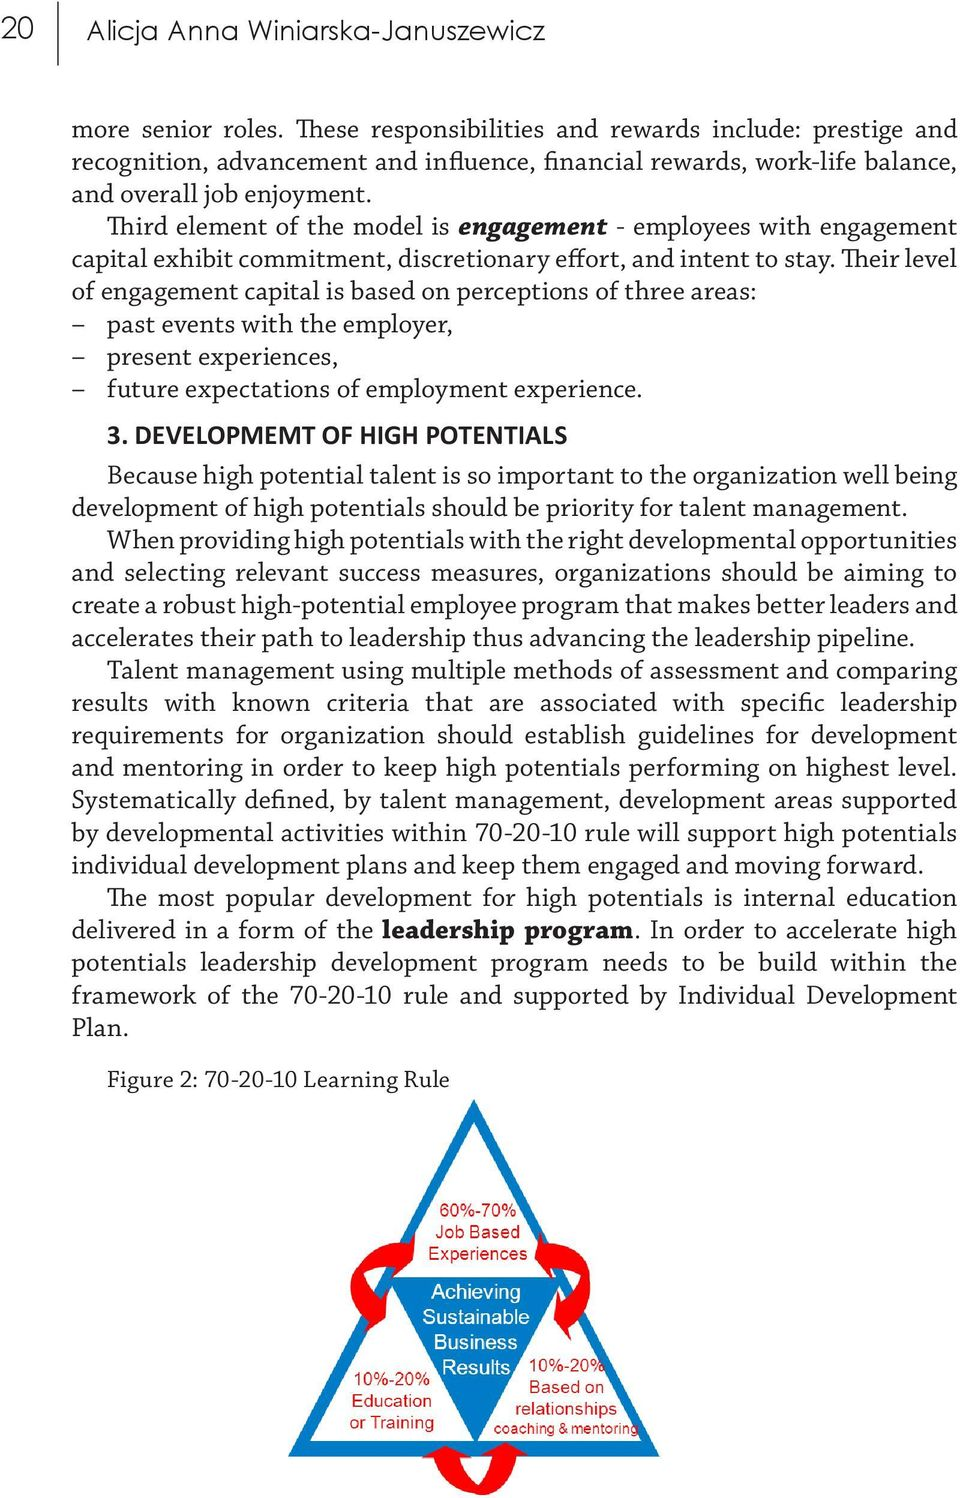 third element of the model is engagement employees with engagement capital exhibit commitment discretionary